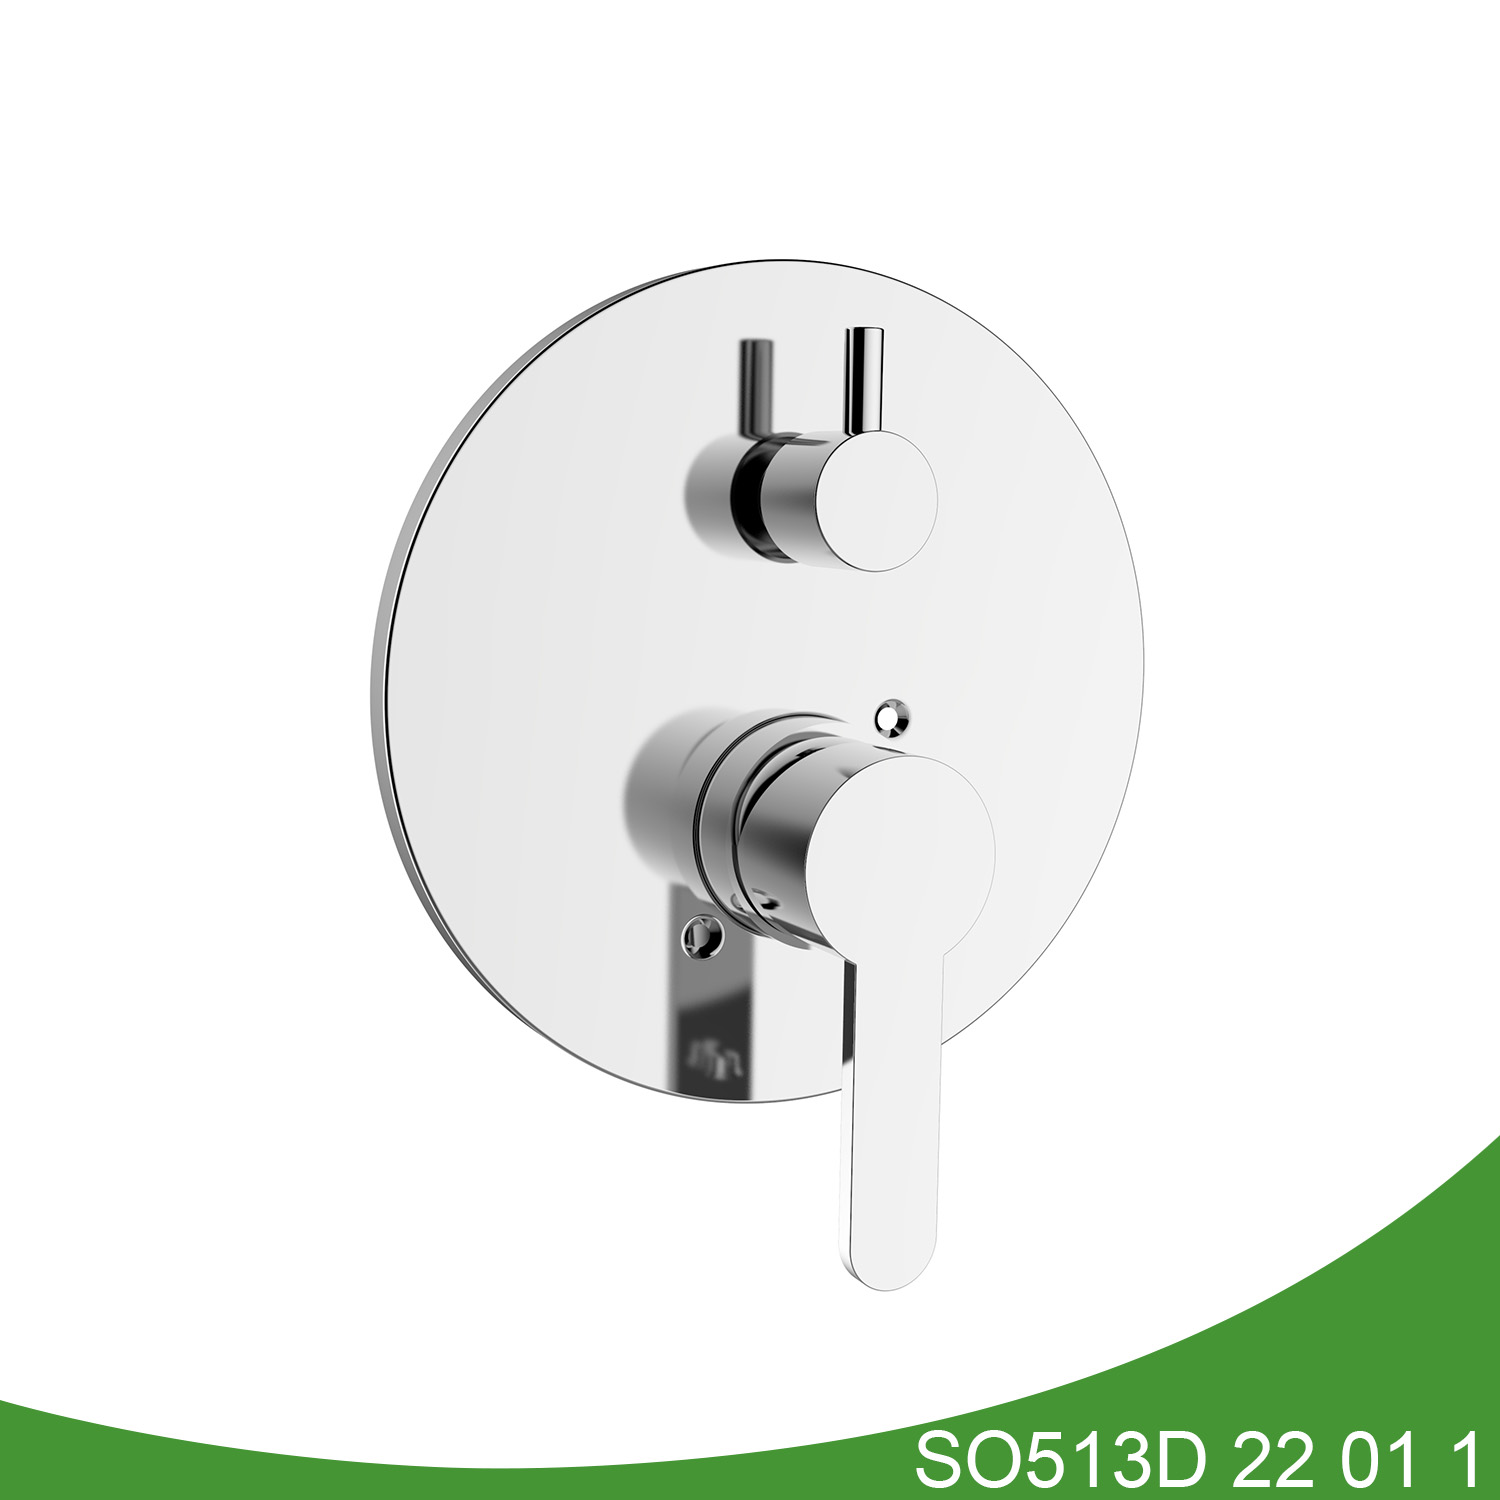 Concealed shower mixer SO513D 22 01 1